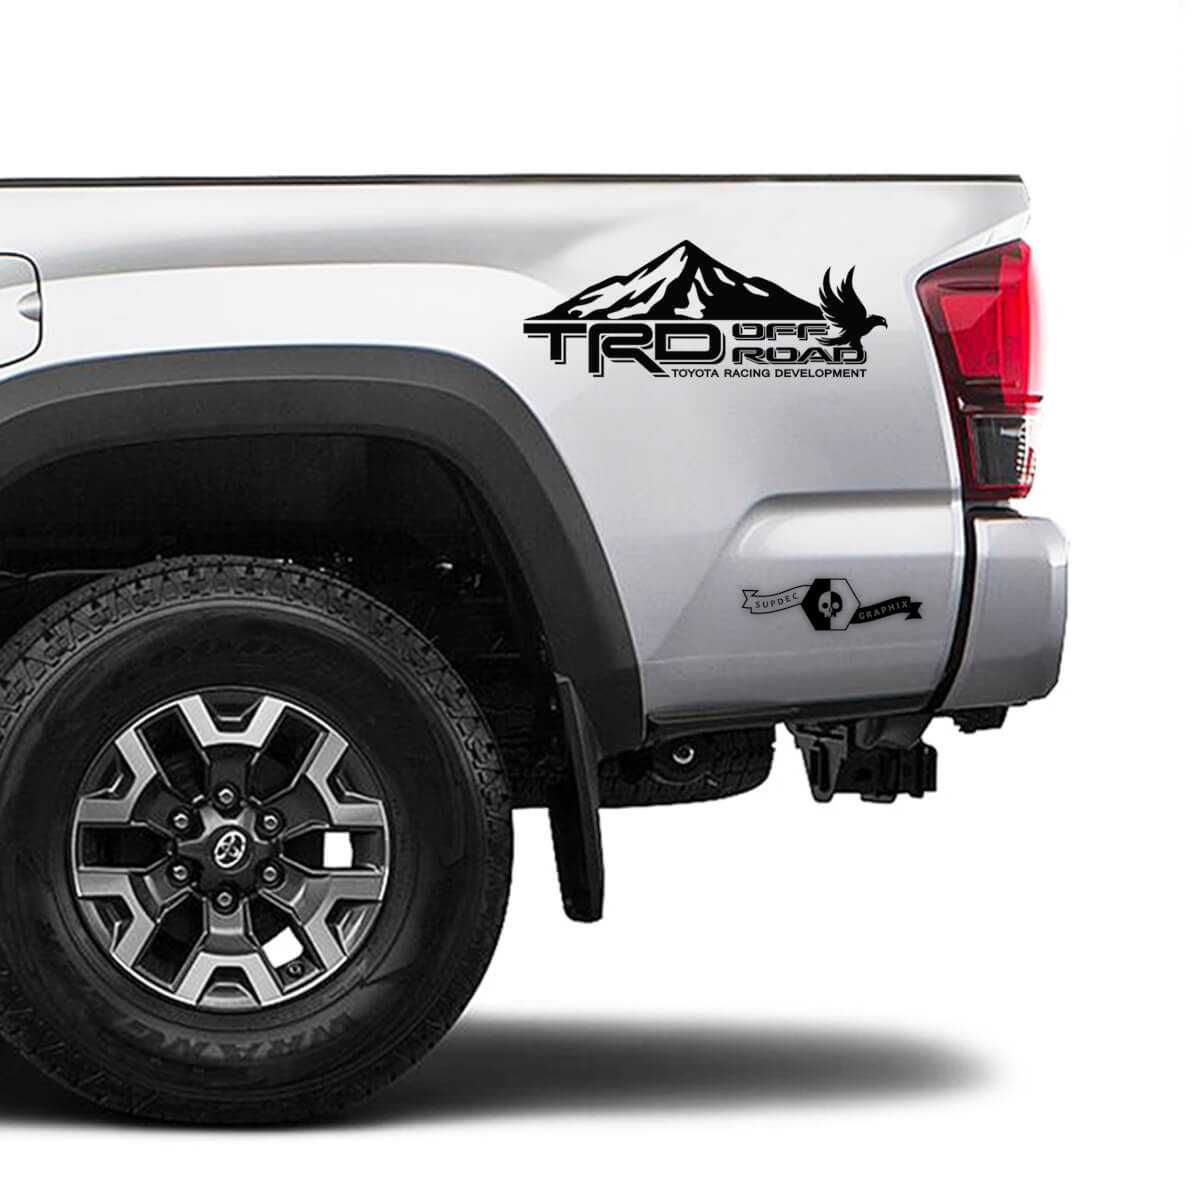 TRD Off Road TOYOTA Snow Mountain Eagle Decals Stickers for Tacoma Tundra 4Runner Hilux